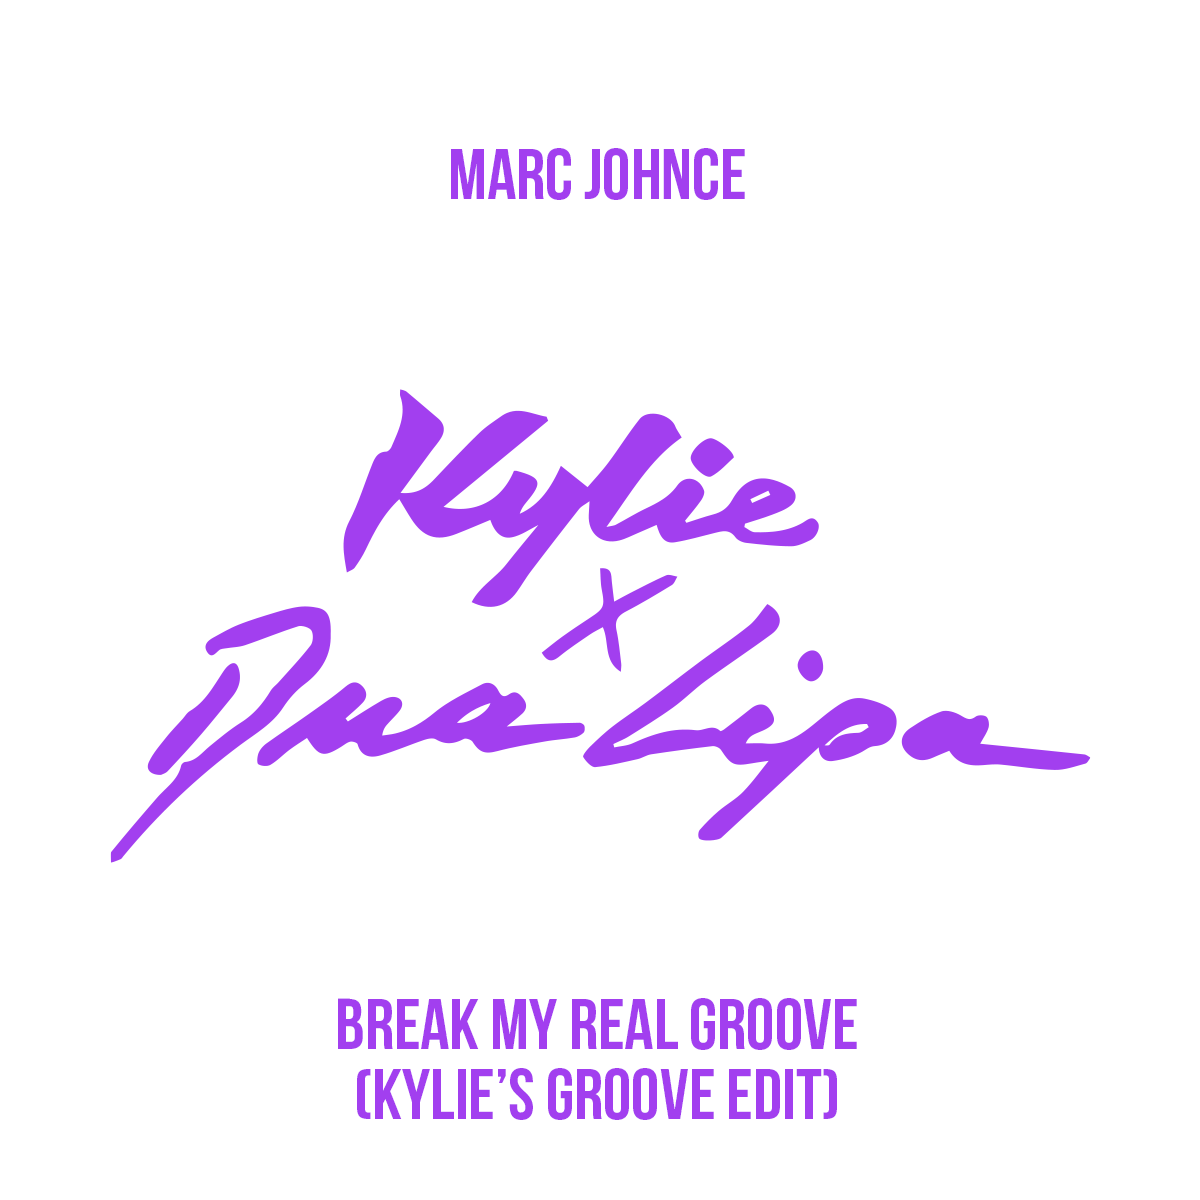 Marc Johnce - Break My Real Groove (Kylie's Groove Edit)